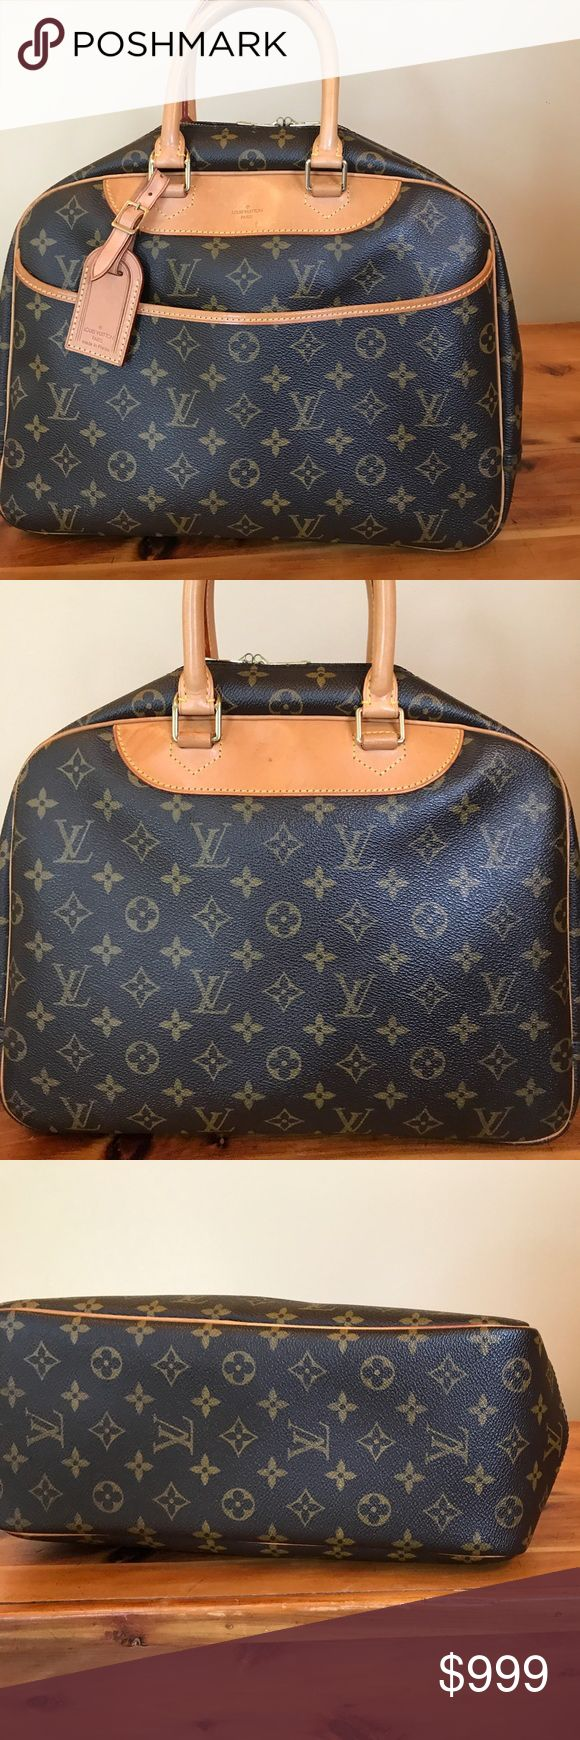 Louis Vuitton Deauville Bag 🌺💖1 Hour only!! Preowned Louis Vuitton Deauville Bag excellent condition clean inside and out nice patina on leather, handles in excellent condition!! Comes with dustbag, lock 🔐 key!!🌺💖 would consider trade for the right bag 😍 bag was verified authentic by Authenticate First!! Louis Vuitton Bags Satchels